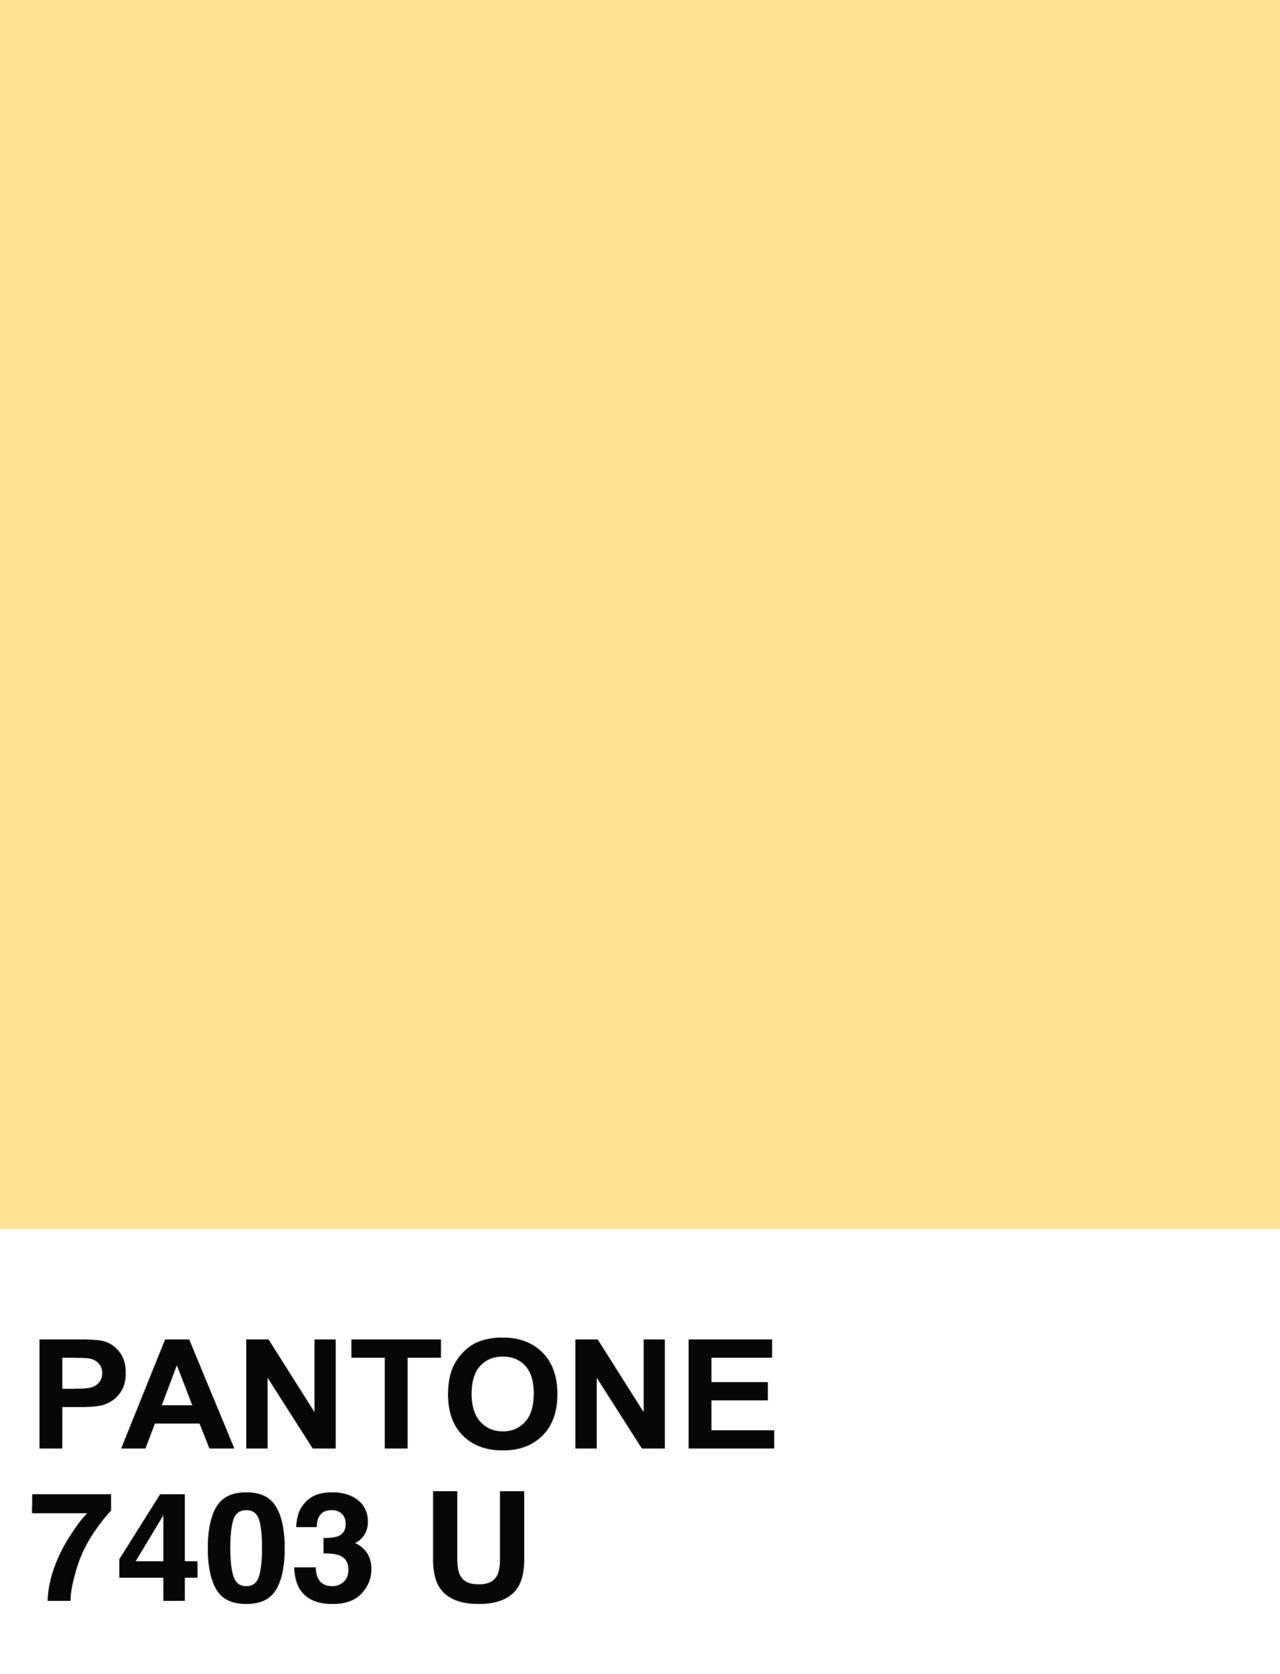 Pantone Solid Uncoated Color Swatches For Week Love This Color